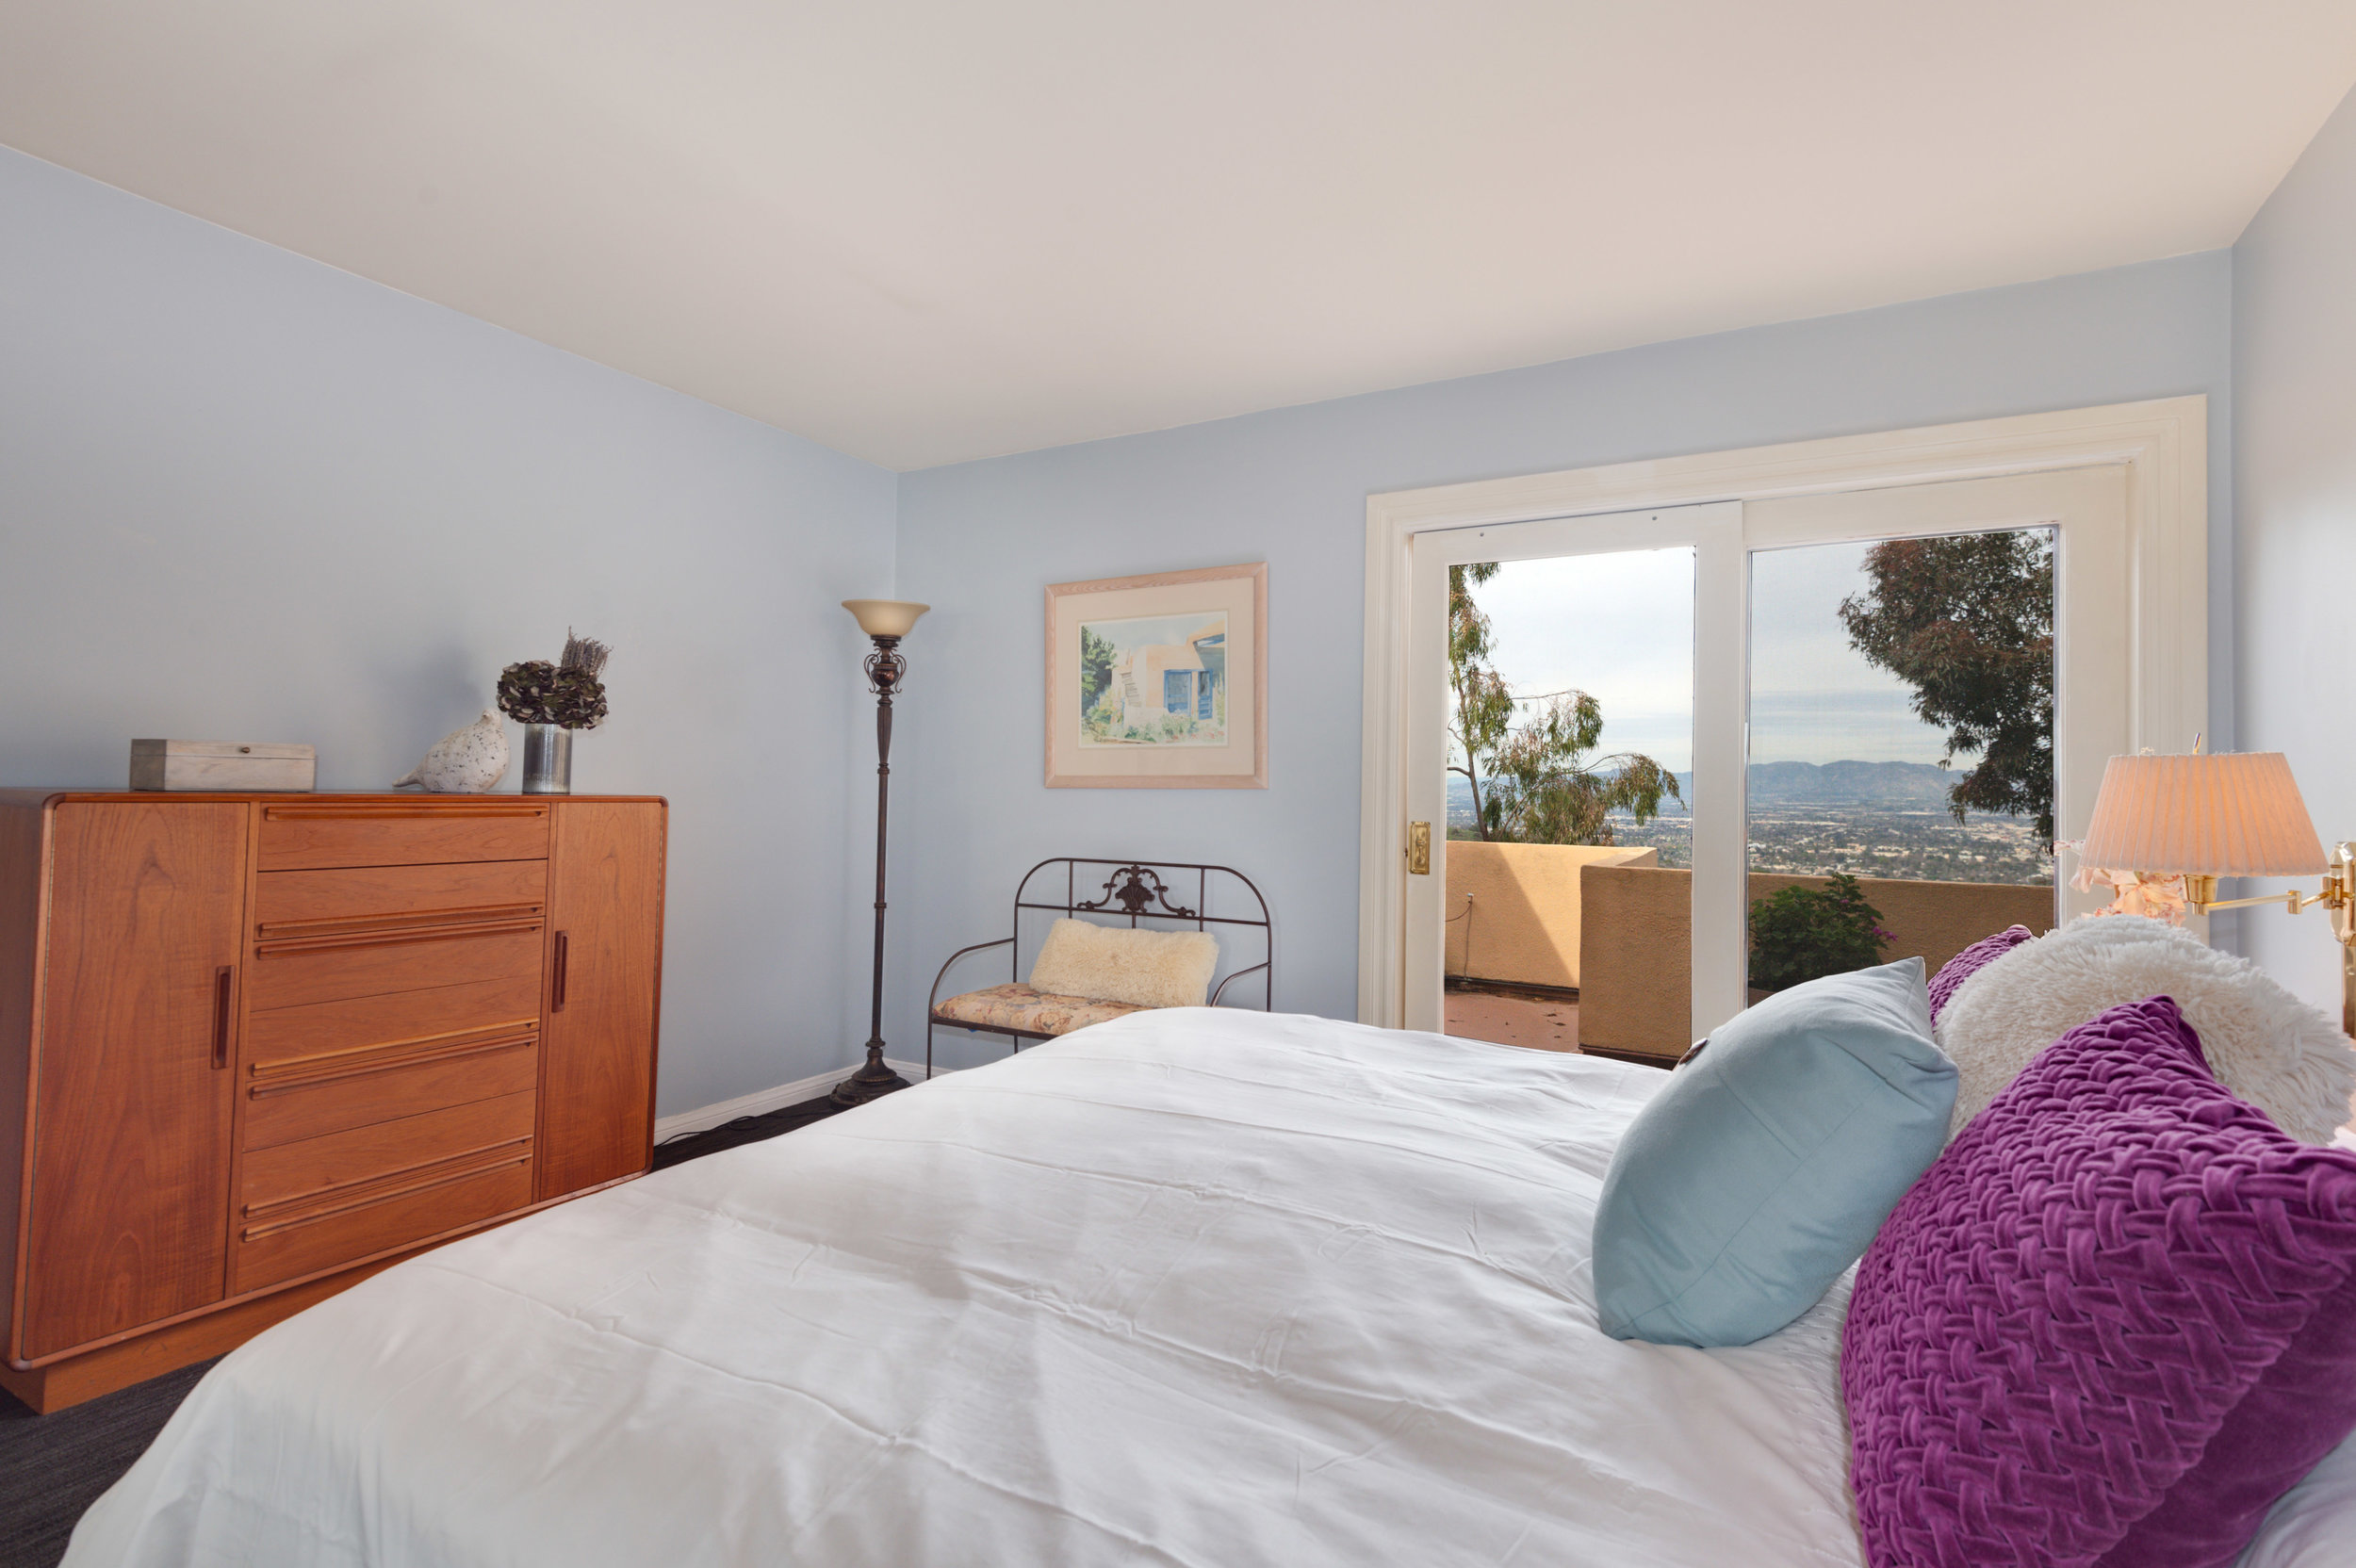 023 Bedroom 12027 Talus Place Beverly Hills 90210 For Sale Lease The Malibu Life Team Luxury Real Estate.jpg